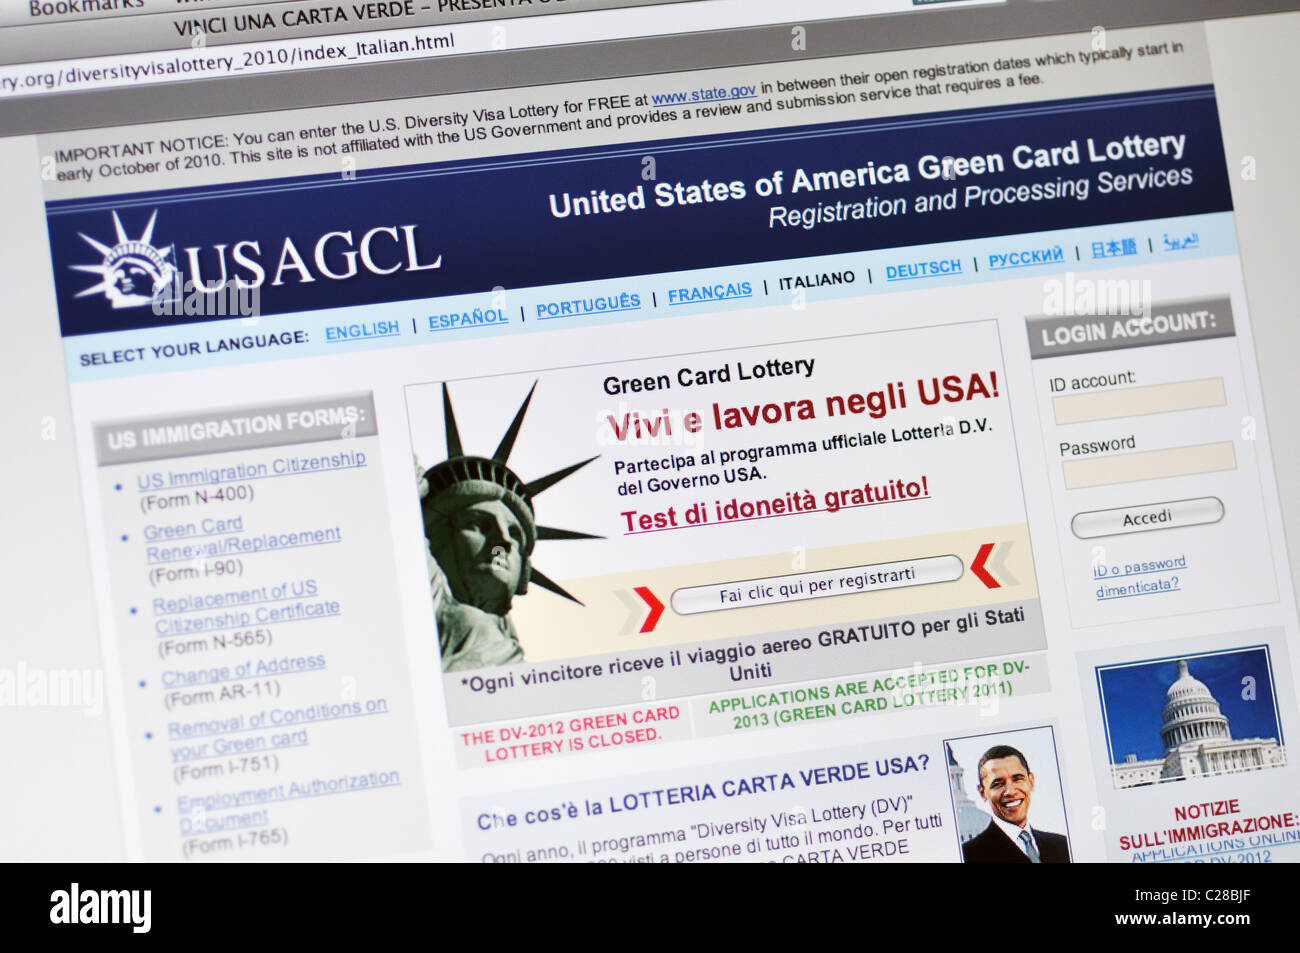 USAGCL website - United States of America Green Card Lottery - in Italian